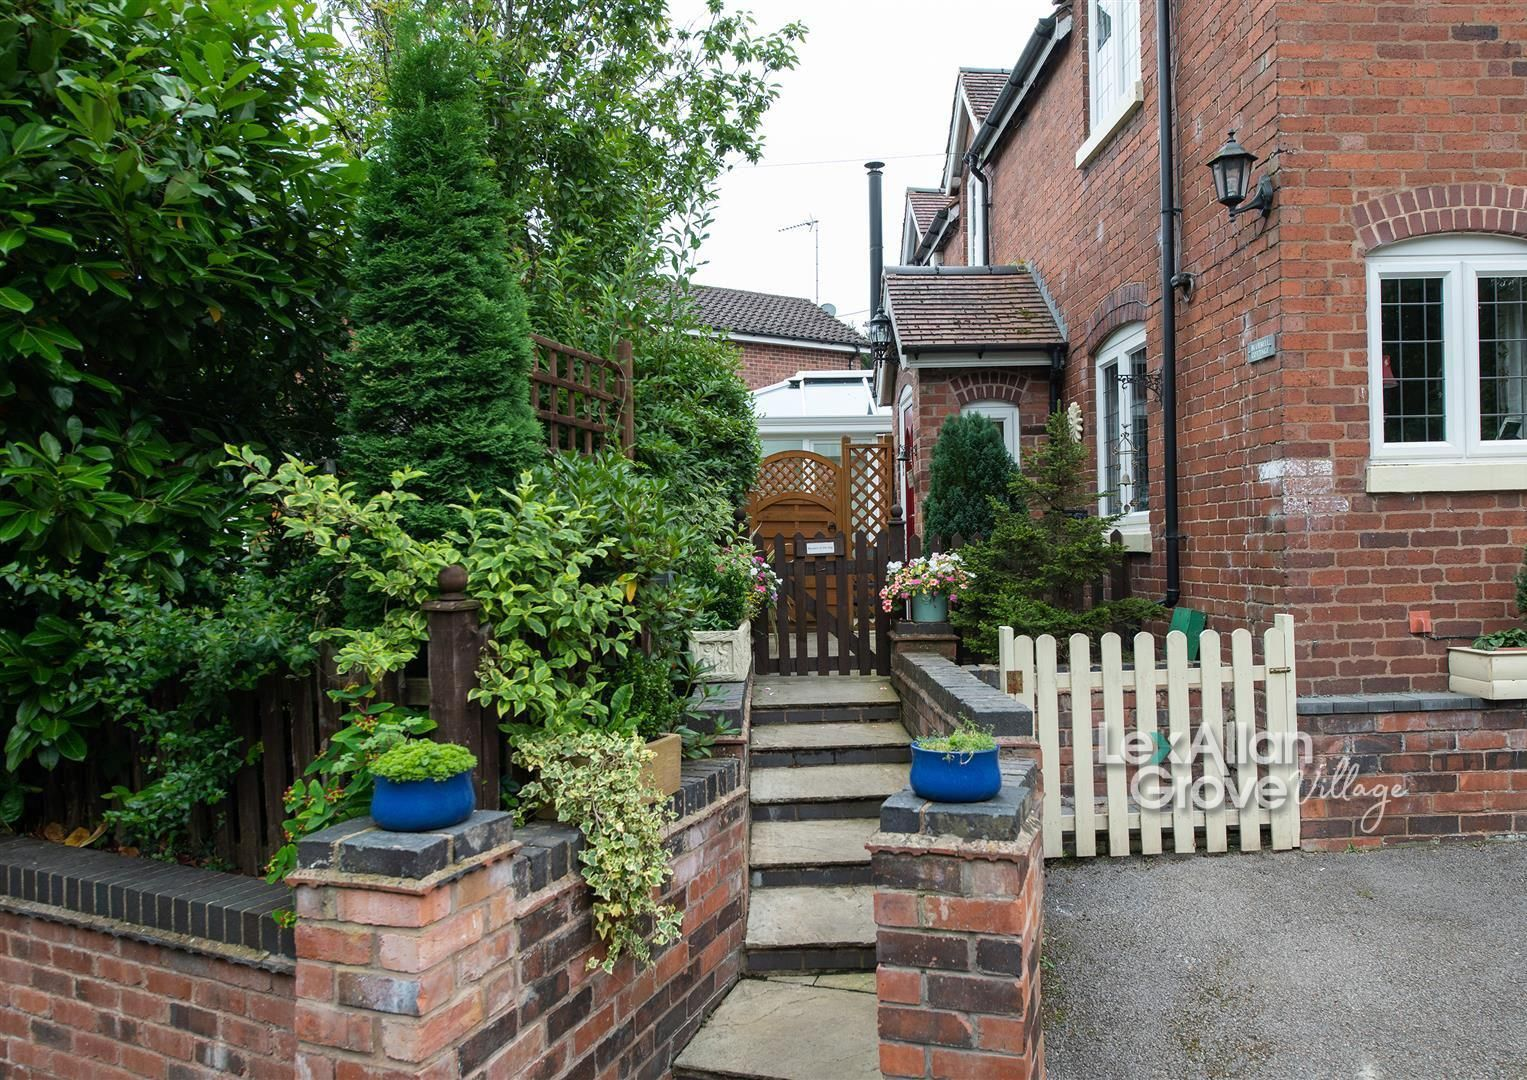 3 bed cottage for sale in Churchill, DY10